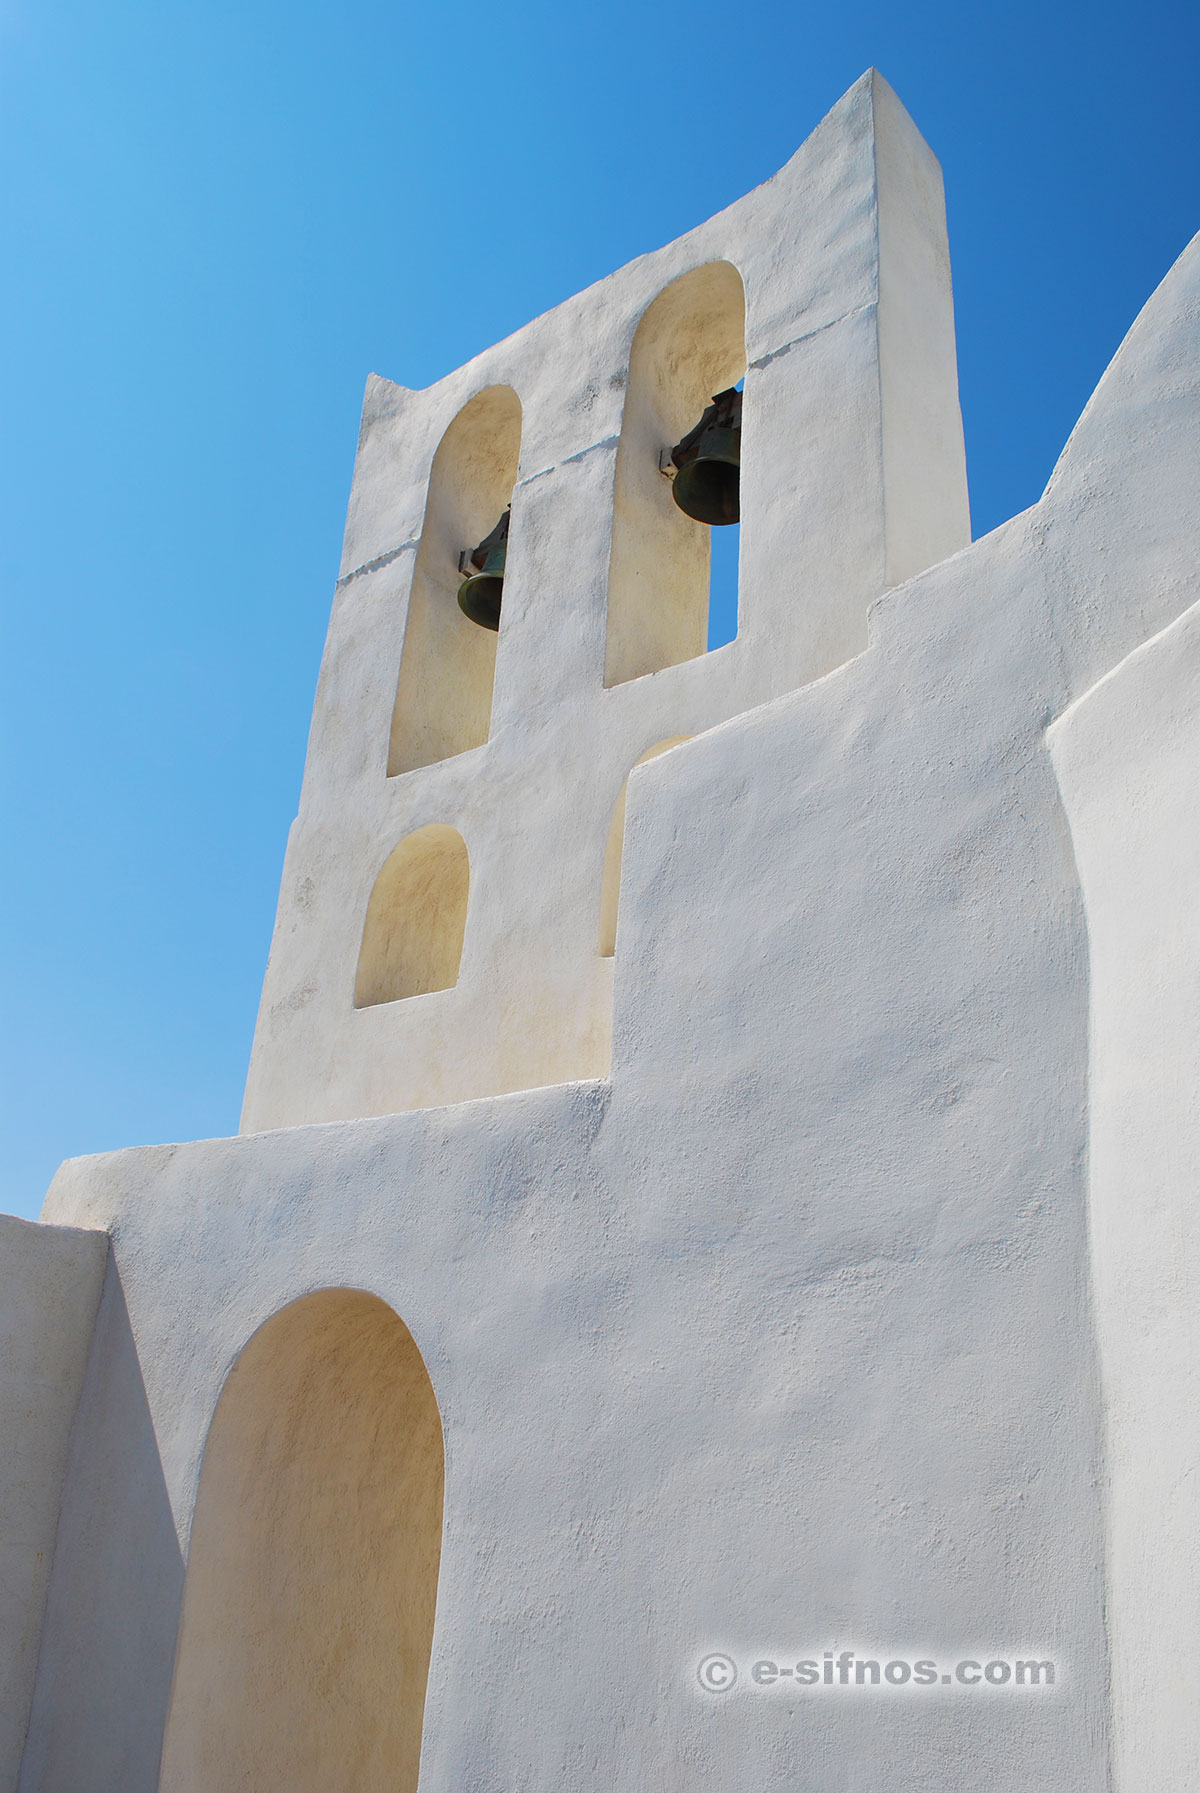 A church in Sifnos